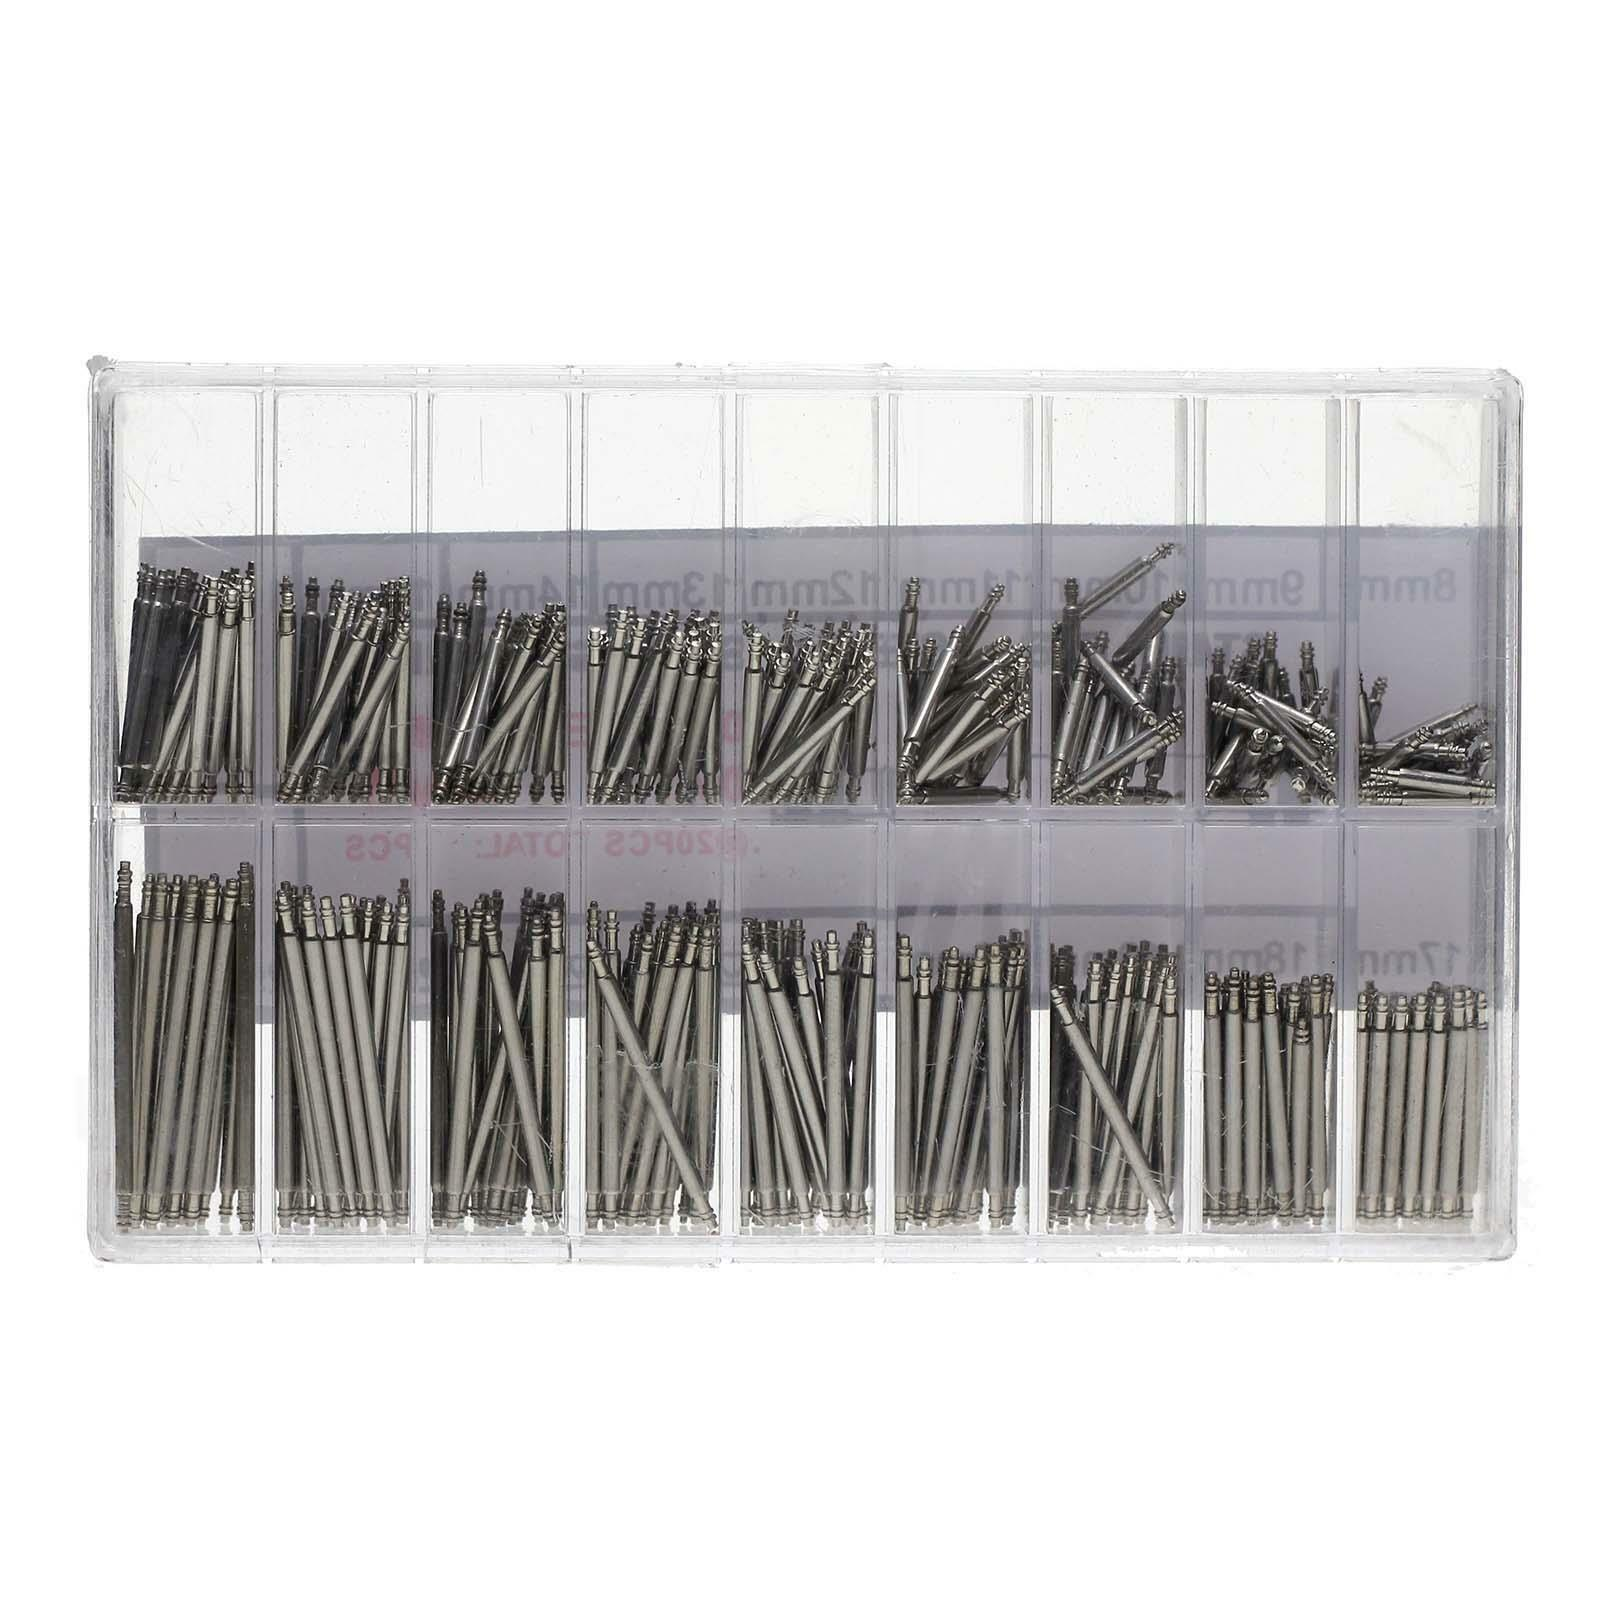 360pcs Watchmaker Watch Band Spring Bars Strap Link Pins Steel Repair Kit Tools Jewelry & Watches